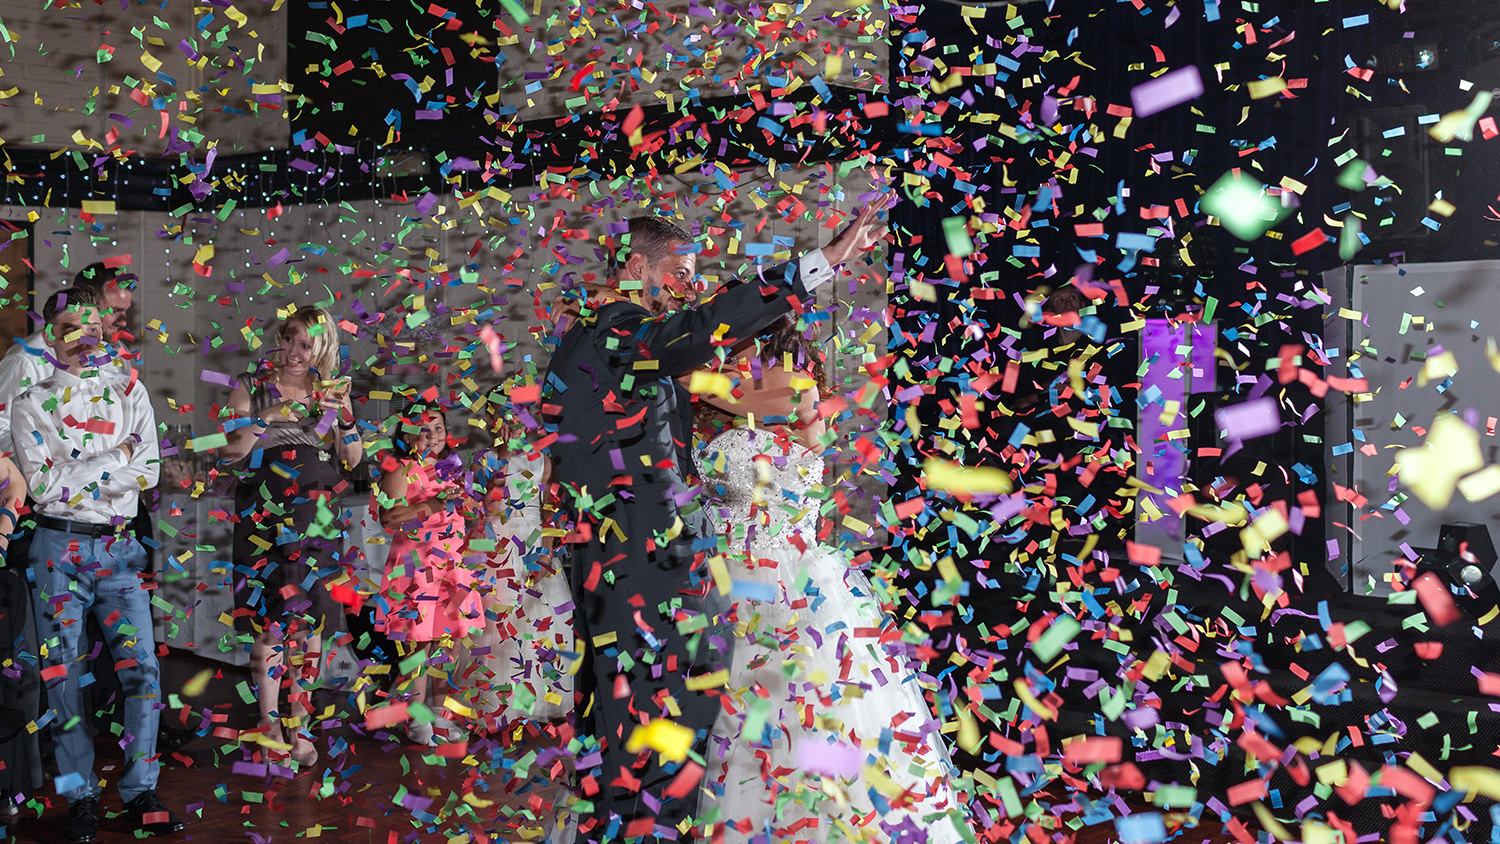 Enjoy a canon of confetti on your perfect wedding day.